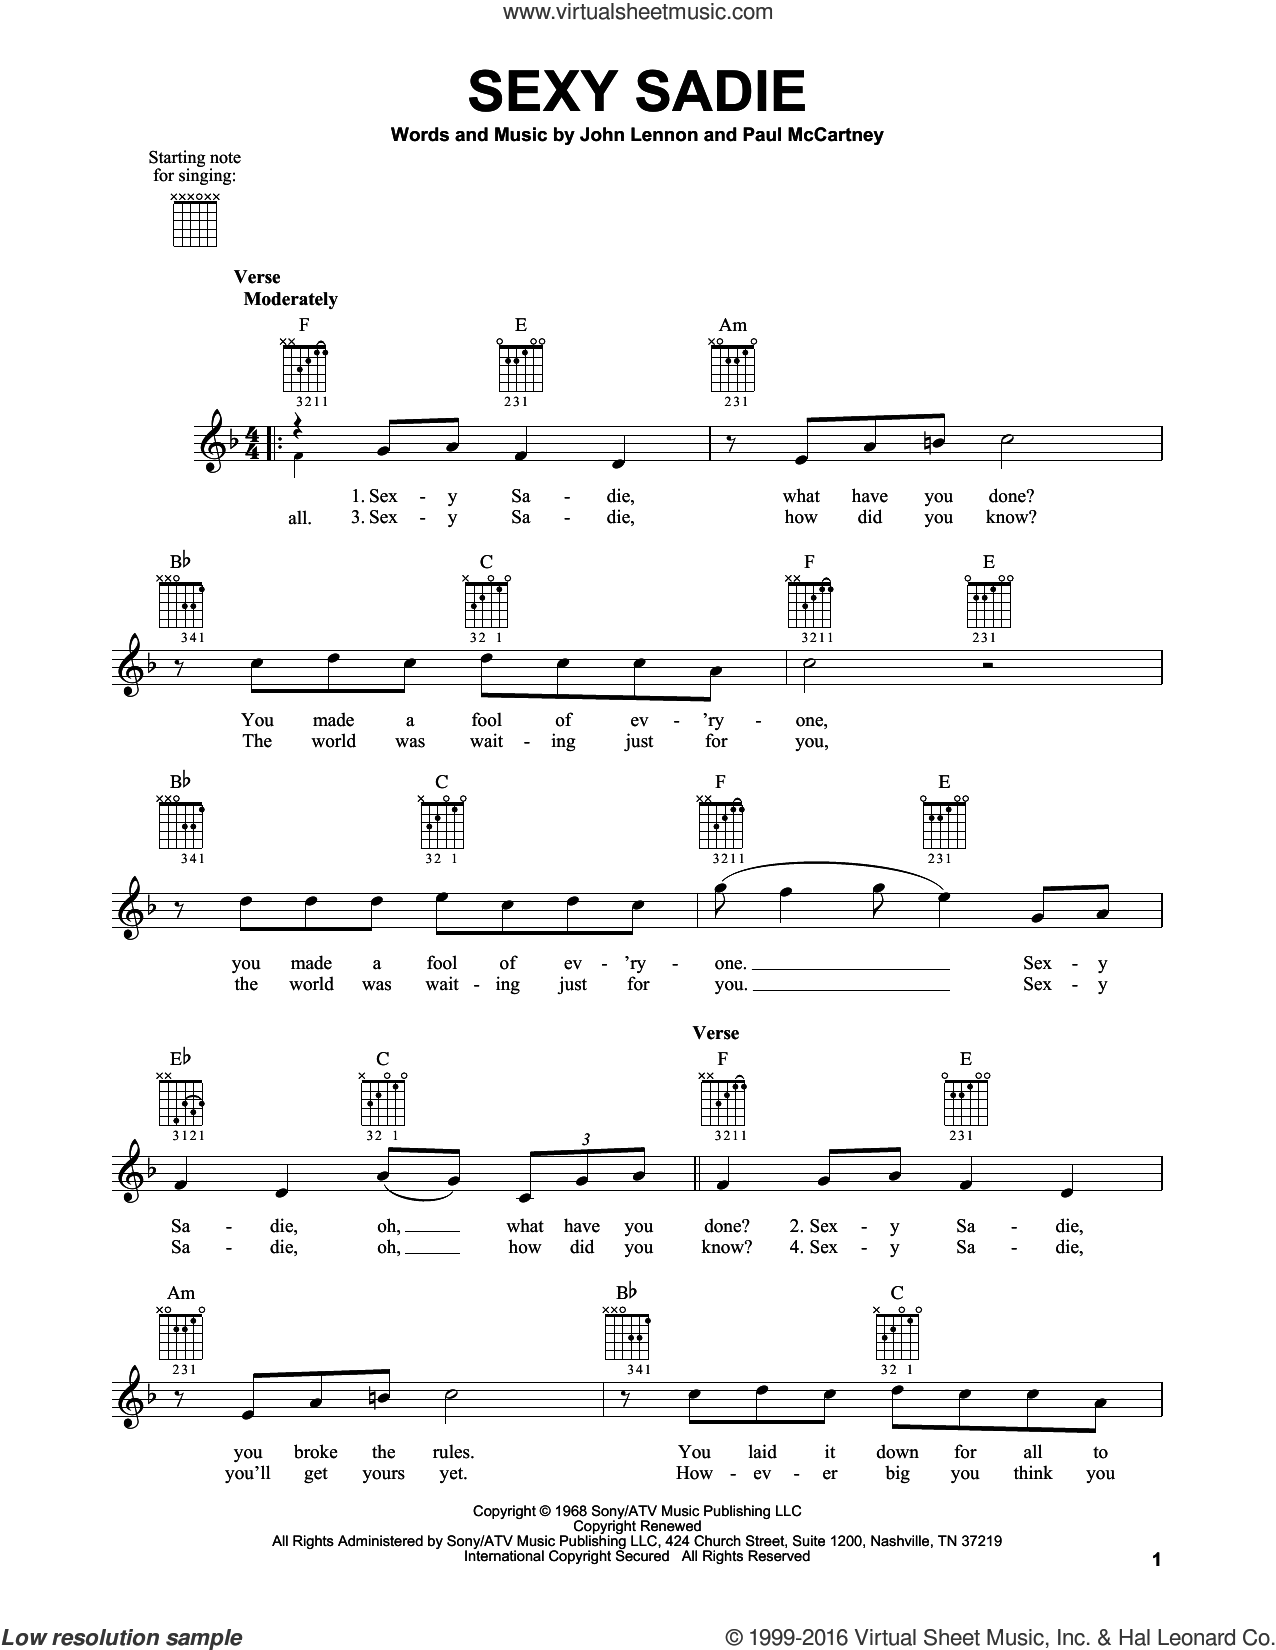 Sexy Sadie sheet music for guitar solo (chords) by The Beatles, John Lennon and Paul McCartney, easy guitar (chords). Score Image Preview.